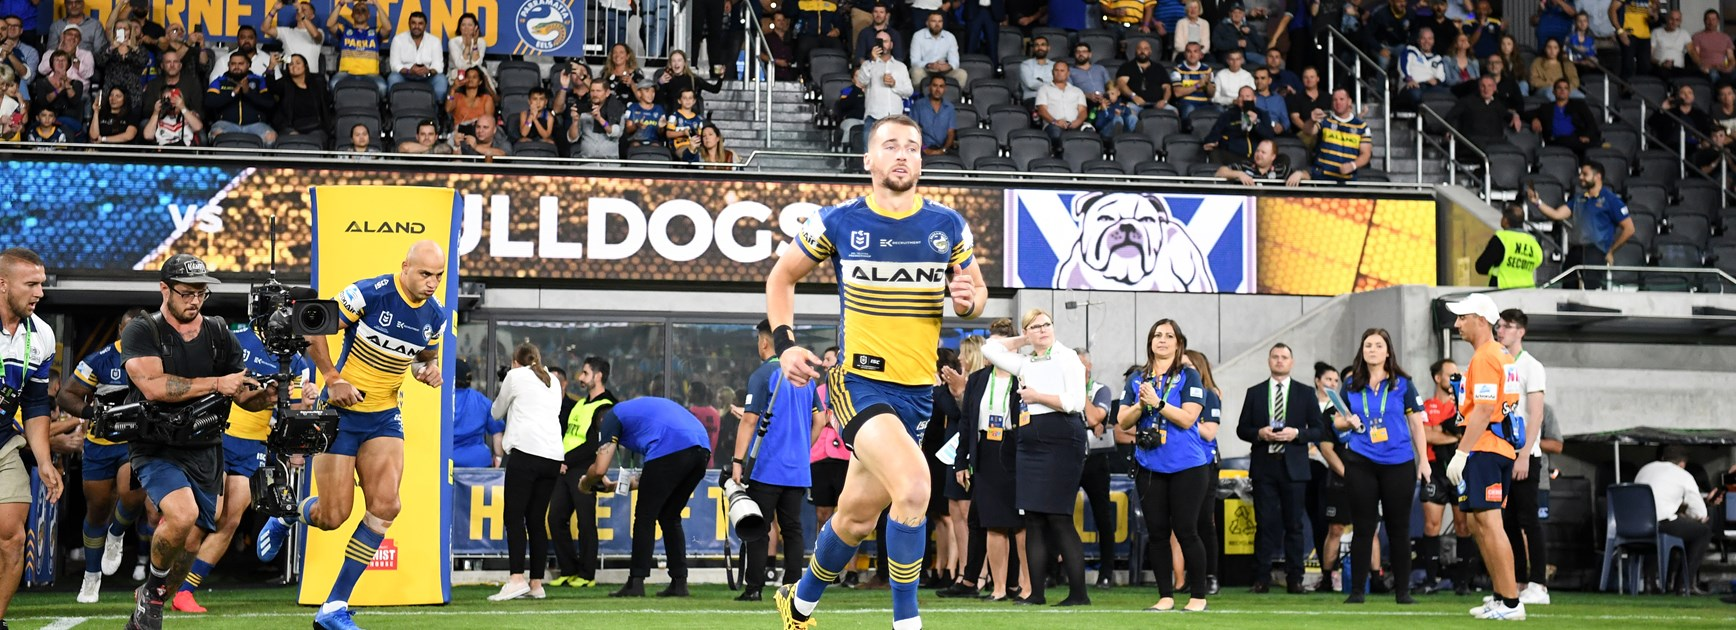 Clint Gutherson leads the Eels onto the field.